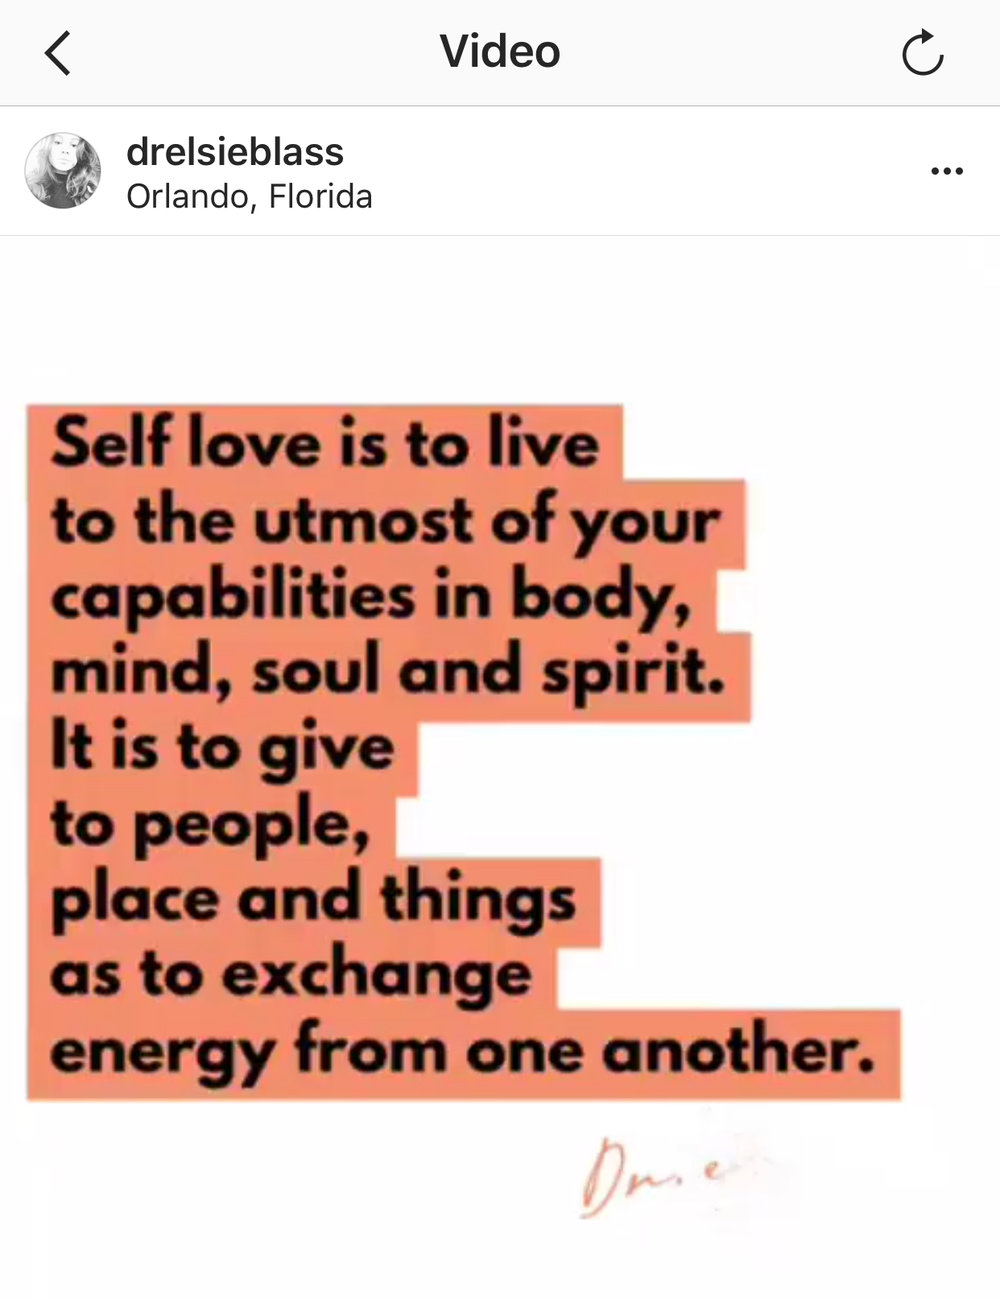 Self-Love's True Form - I've often asked people what self-love means to them. Some say it means that you're selfish.What are your thoughts of self-love?Share your thoughts by emailing me here info@SelfloveResearch.com